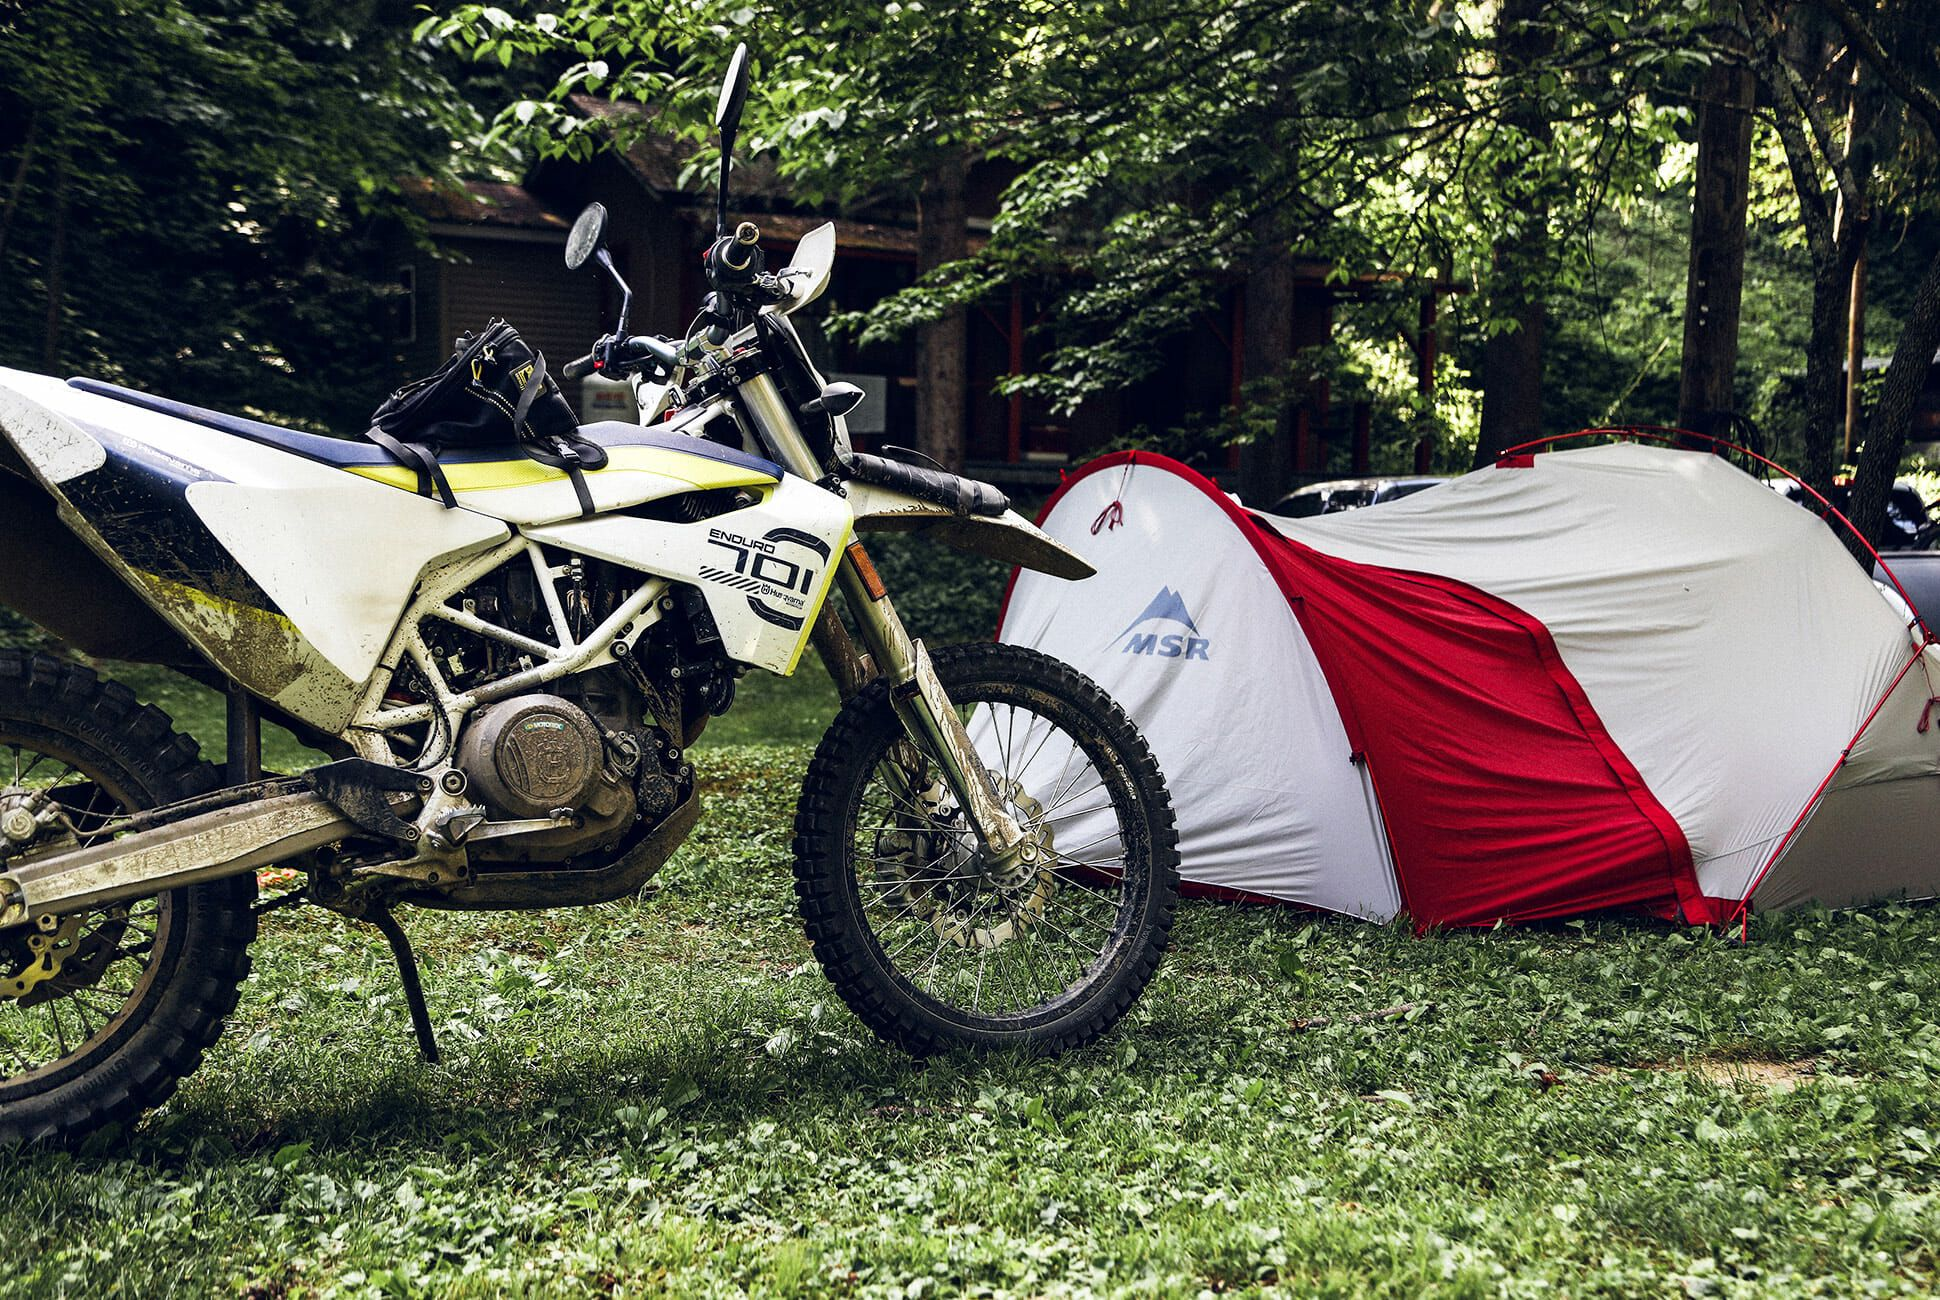 The-Best-Way-to-Go-Overlanding-on-Two-Wheels-gear-patrol-slide-1